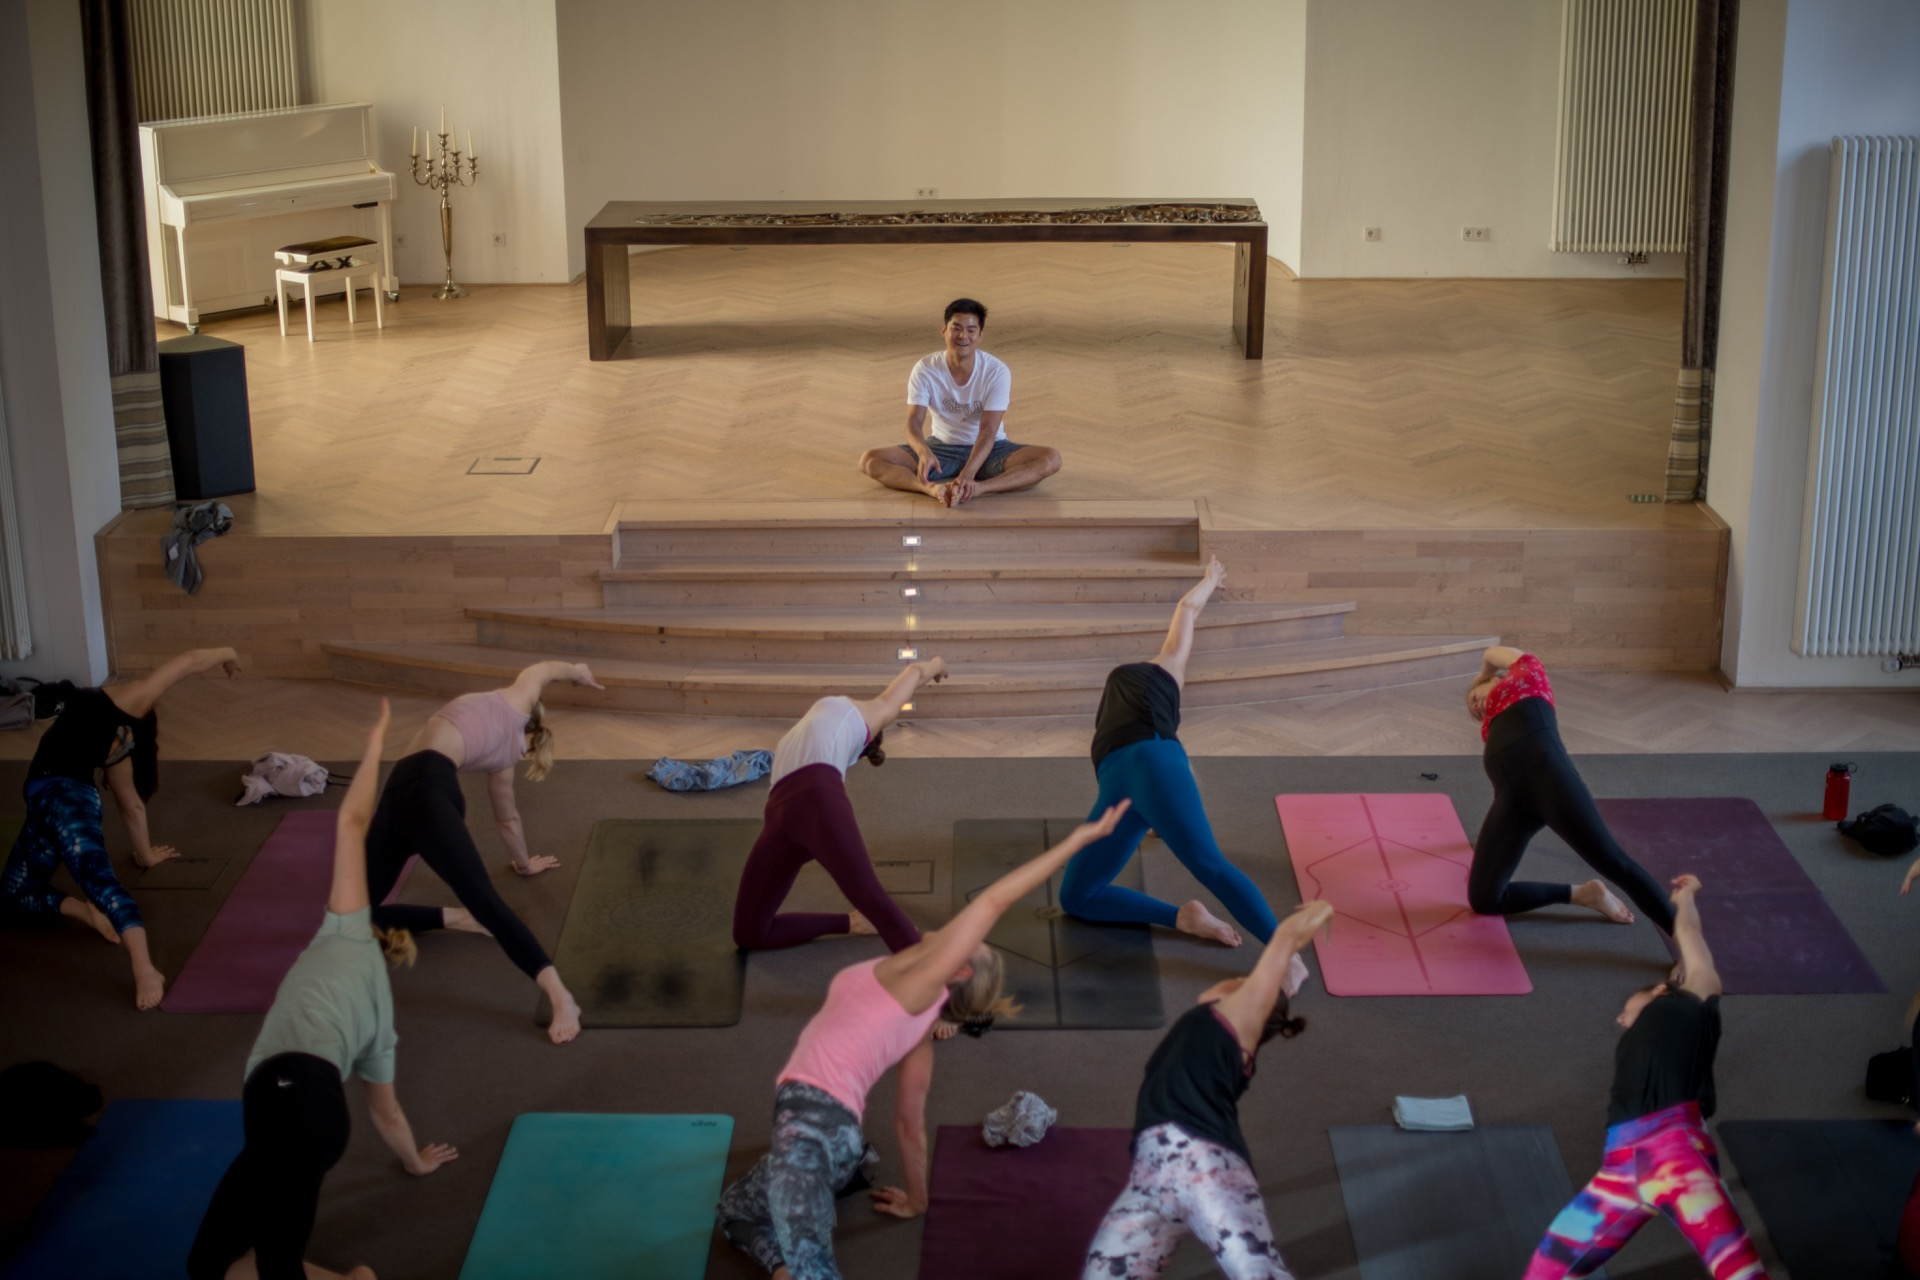 Hie-Kim-Friends-2019-Yoga-Retreat-Alina-Matis-Photography-042 - Hie Kim Yoga - Yoga Retreat - Yoga Workshops und Reisen